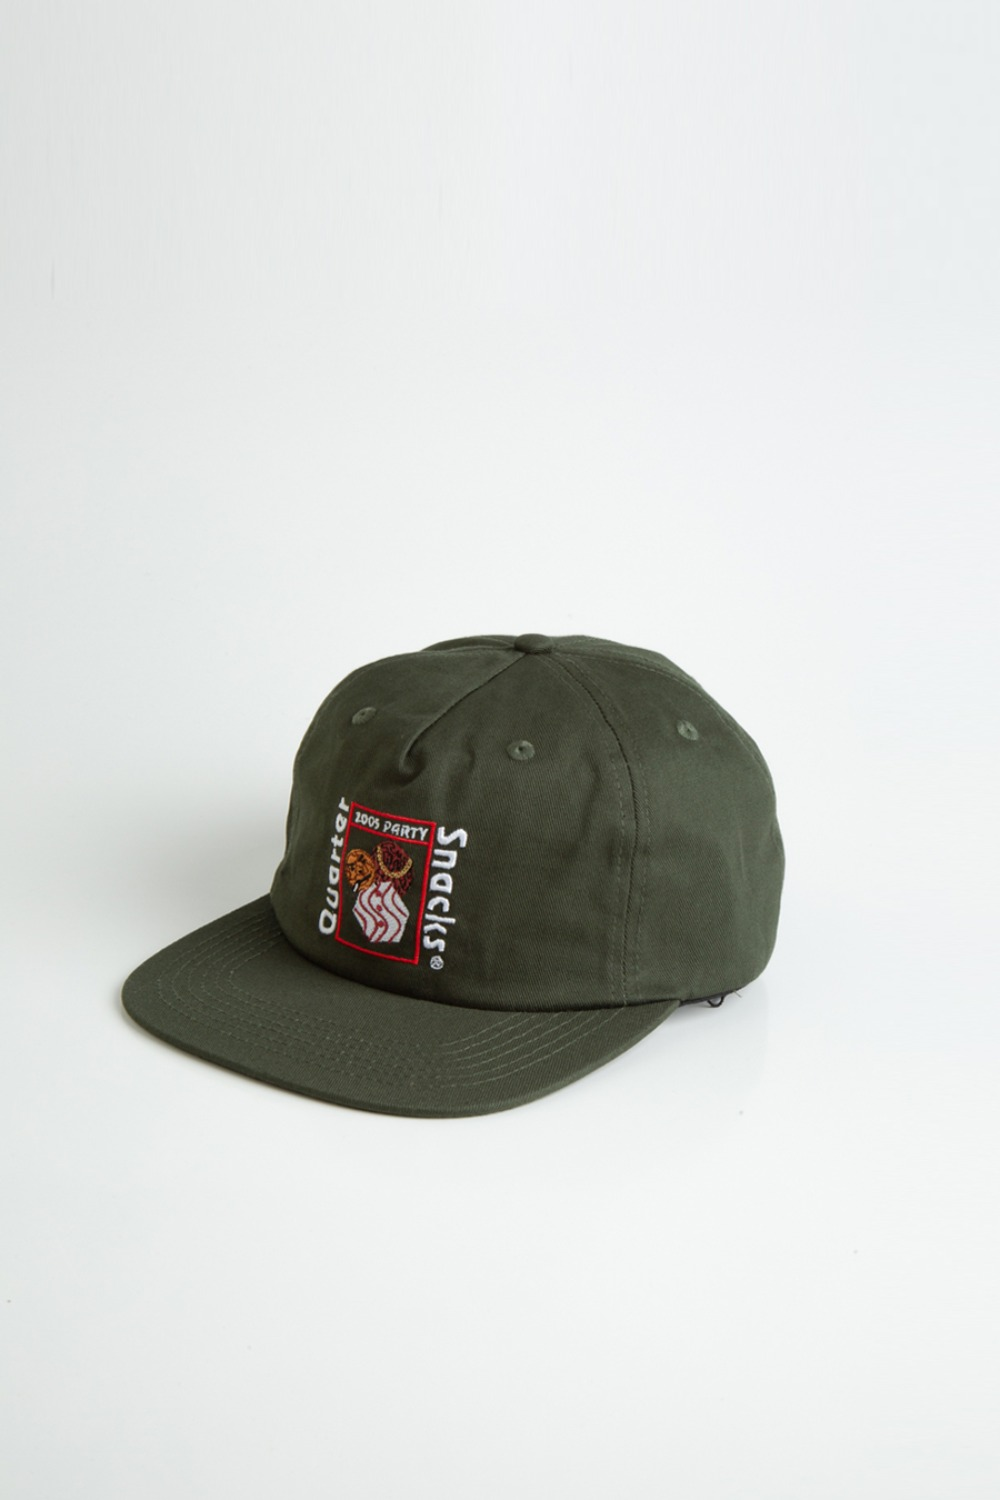 PARTY CAP FOREST GREEN